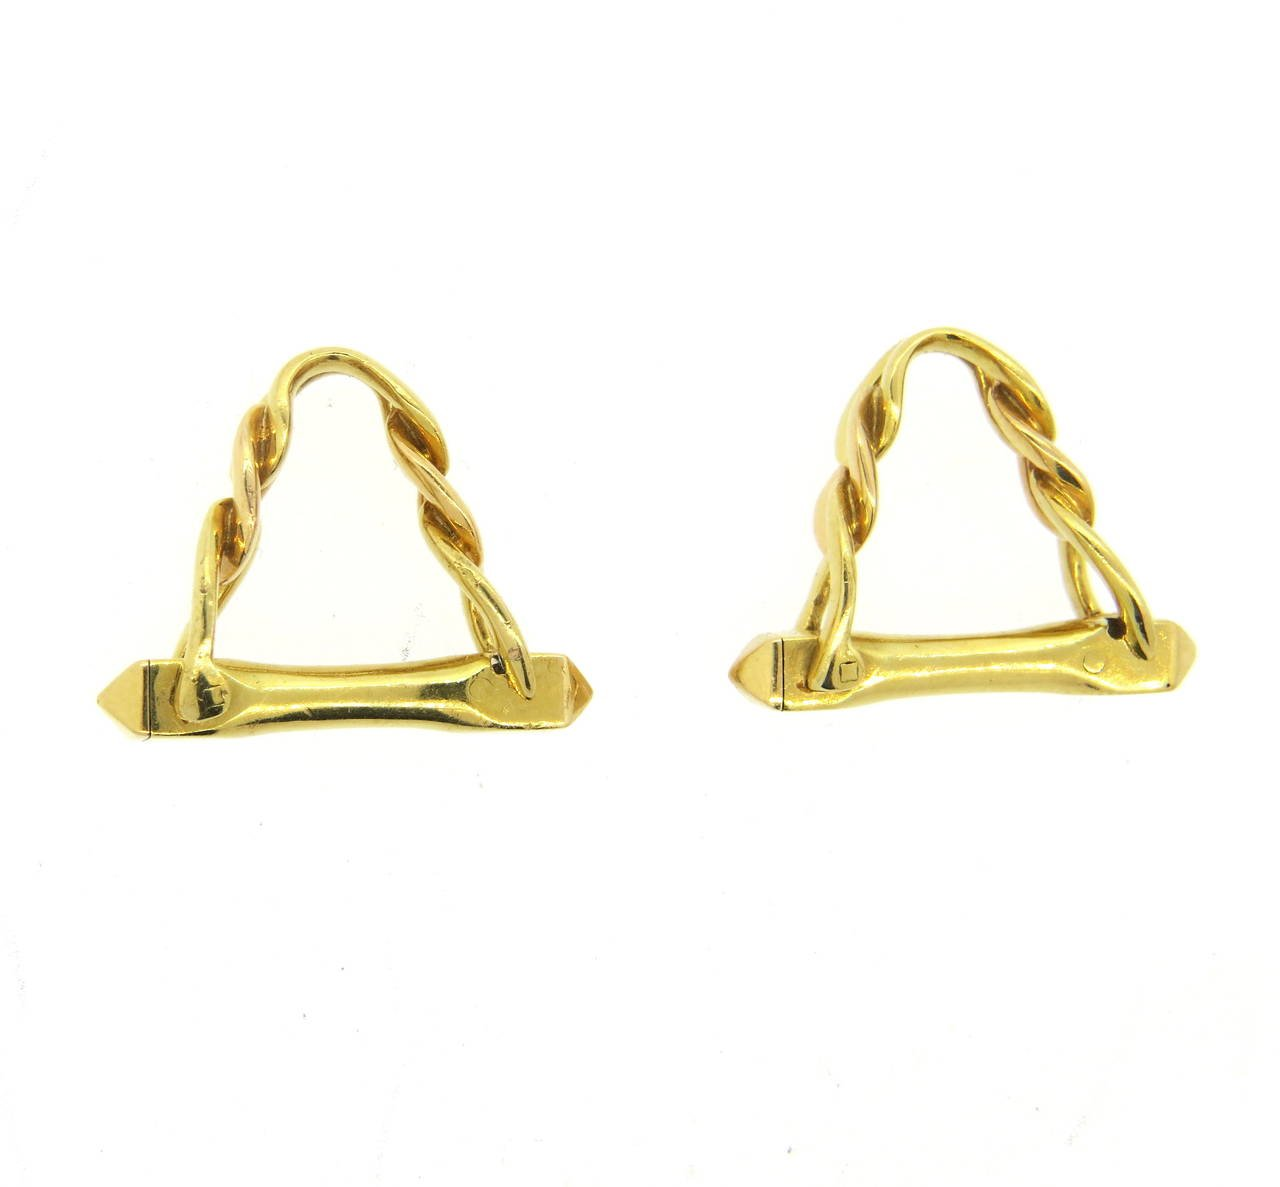 Cartier Paris Gold Stirrup Cufflinks - UPONPARK